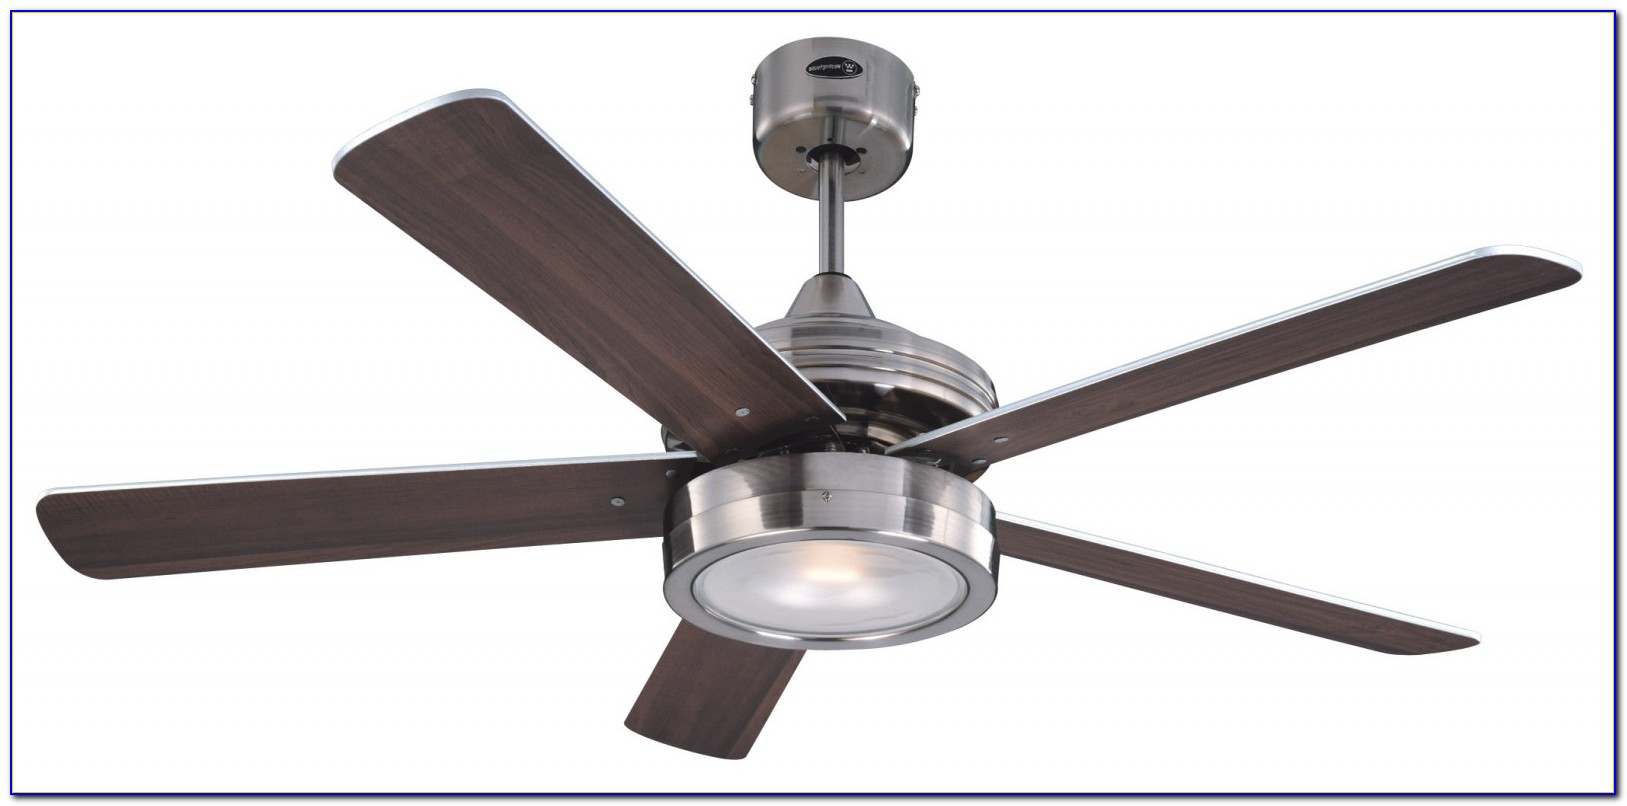 Westinghouse Industrial Ceiling Fan Black